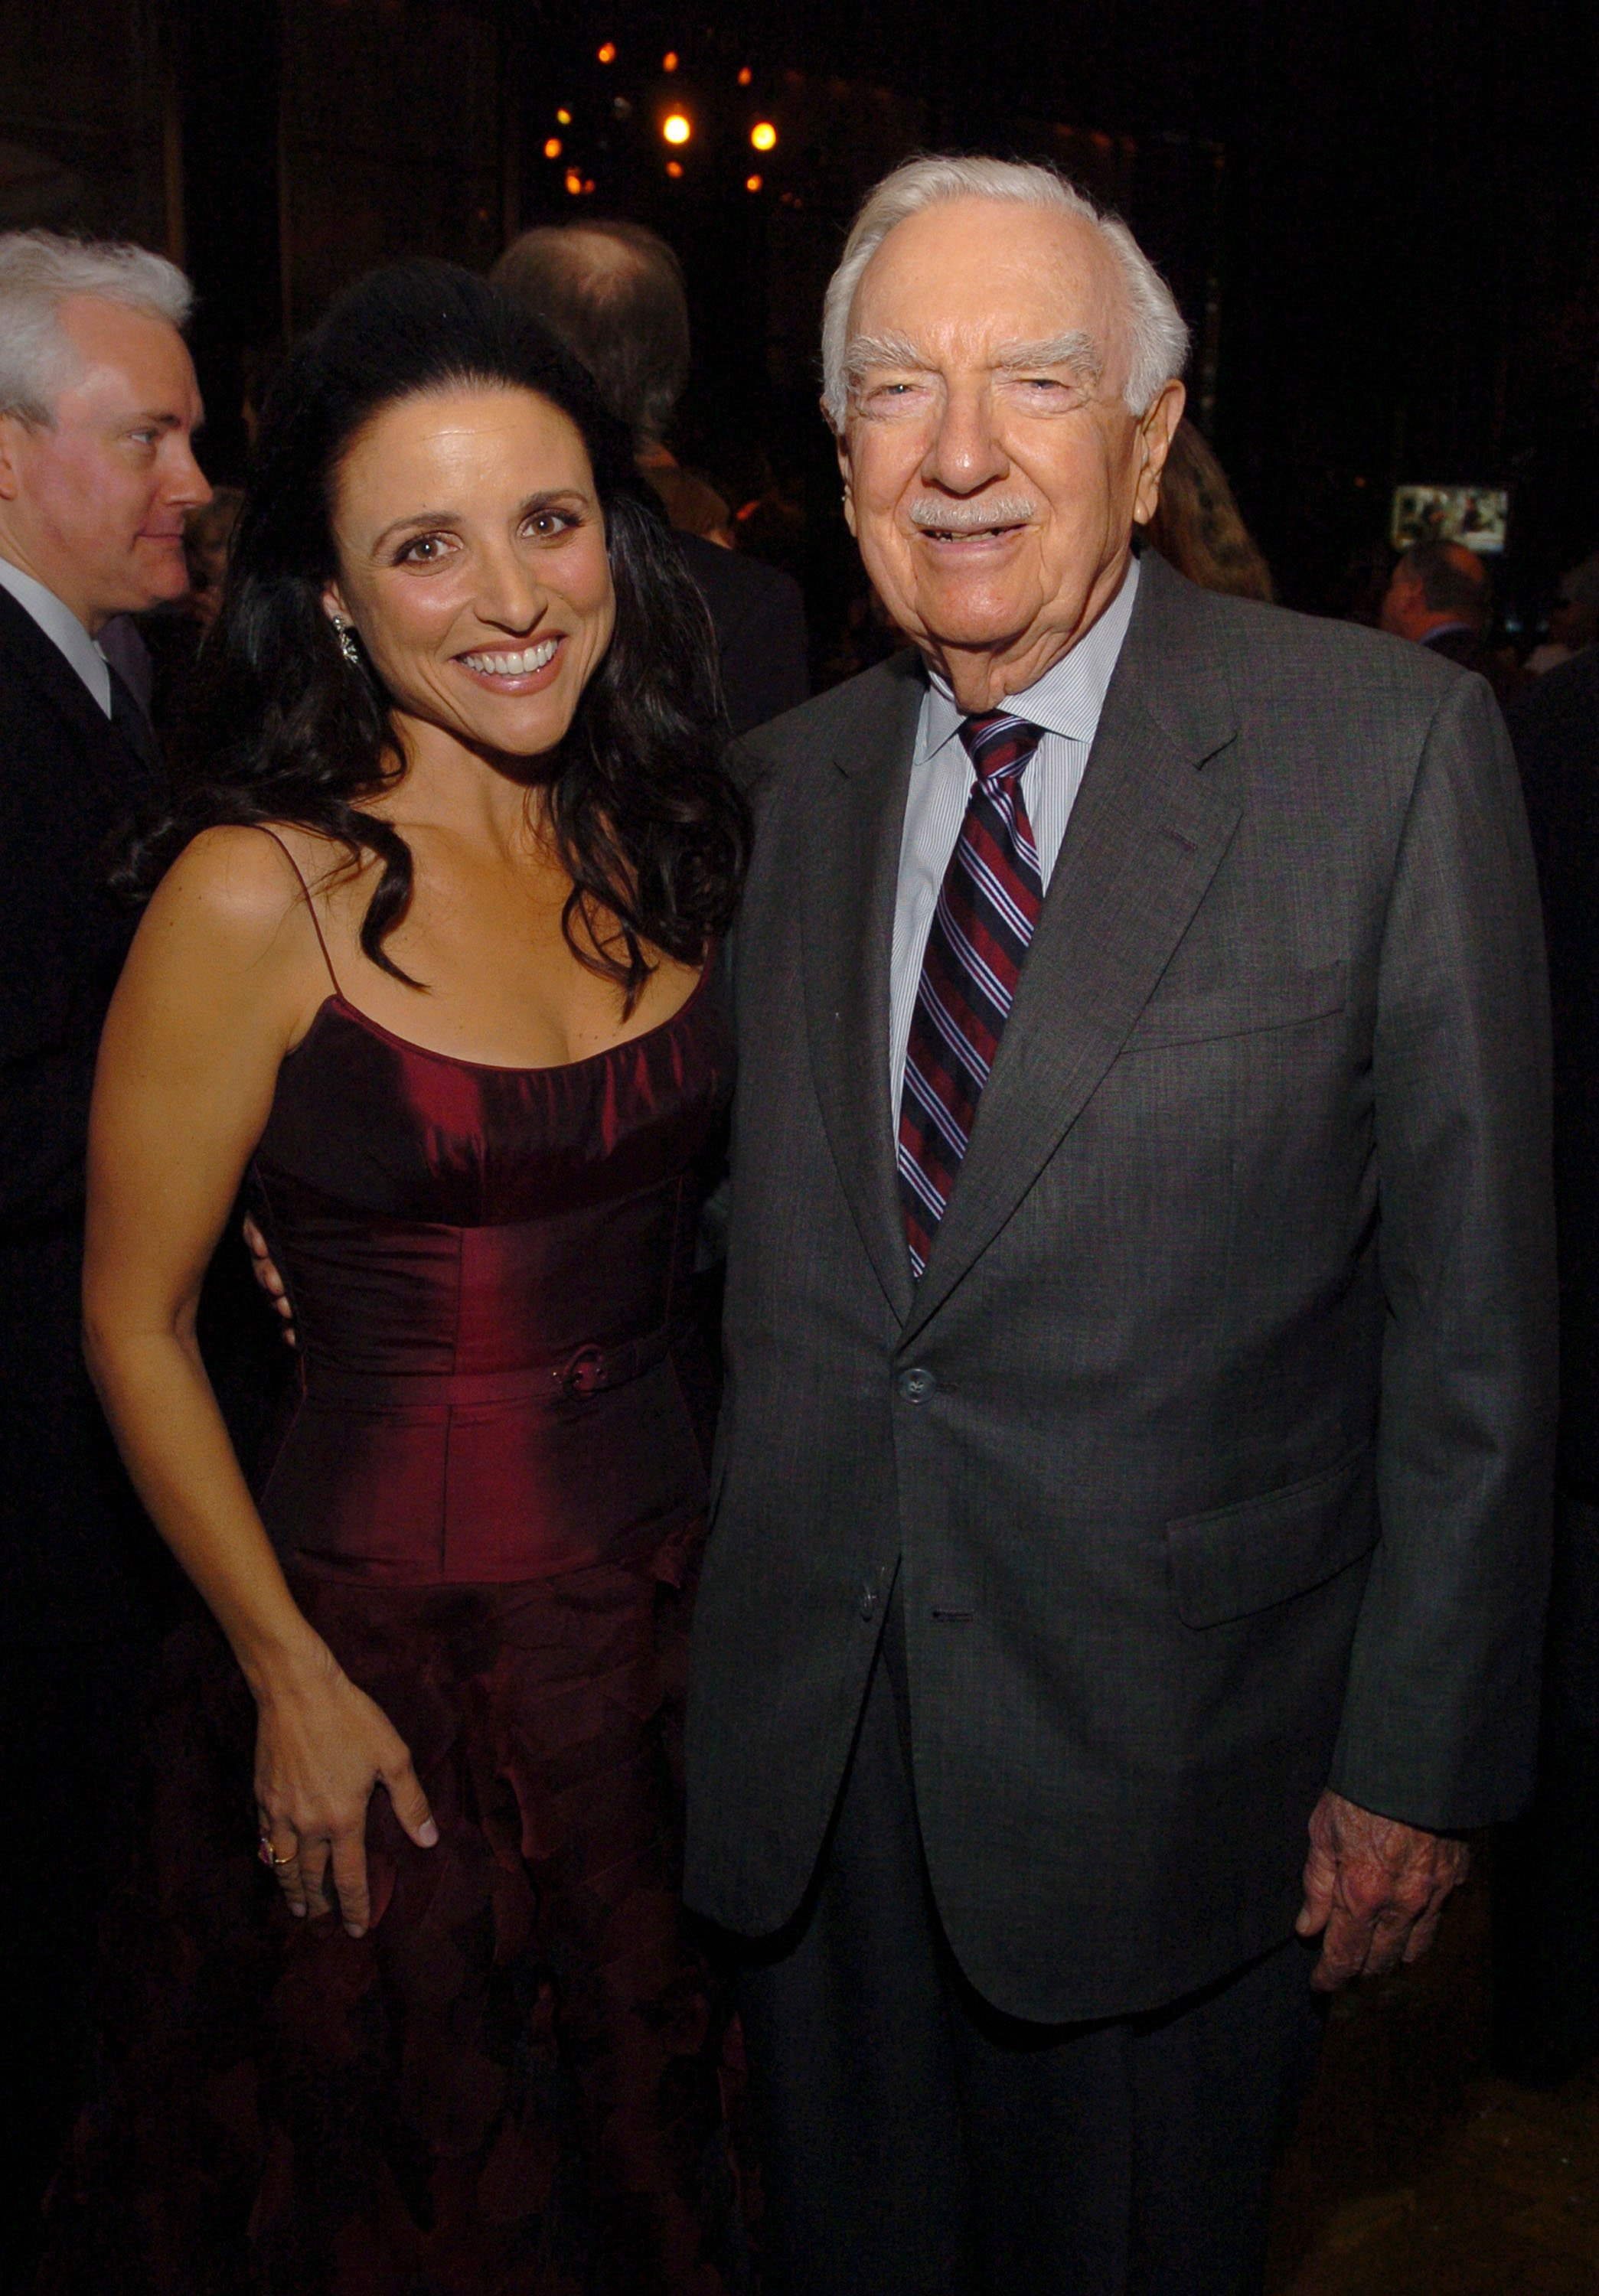 Julia Louis-Dreyfus and Walter Cronkite in New York City on November 17, 2004 | Source: Getty Images